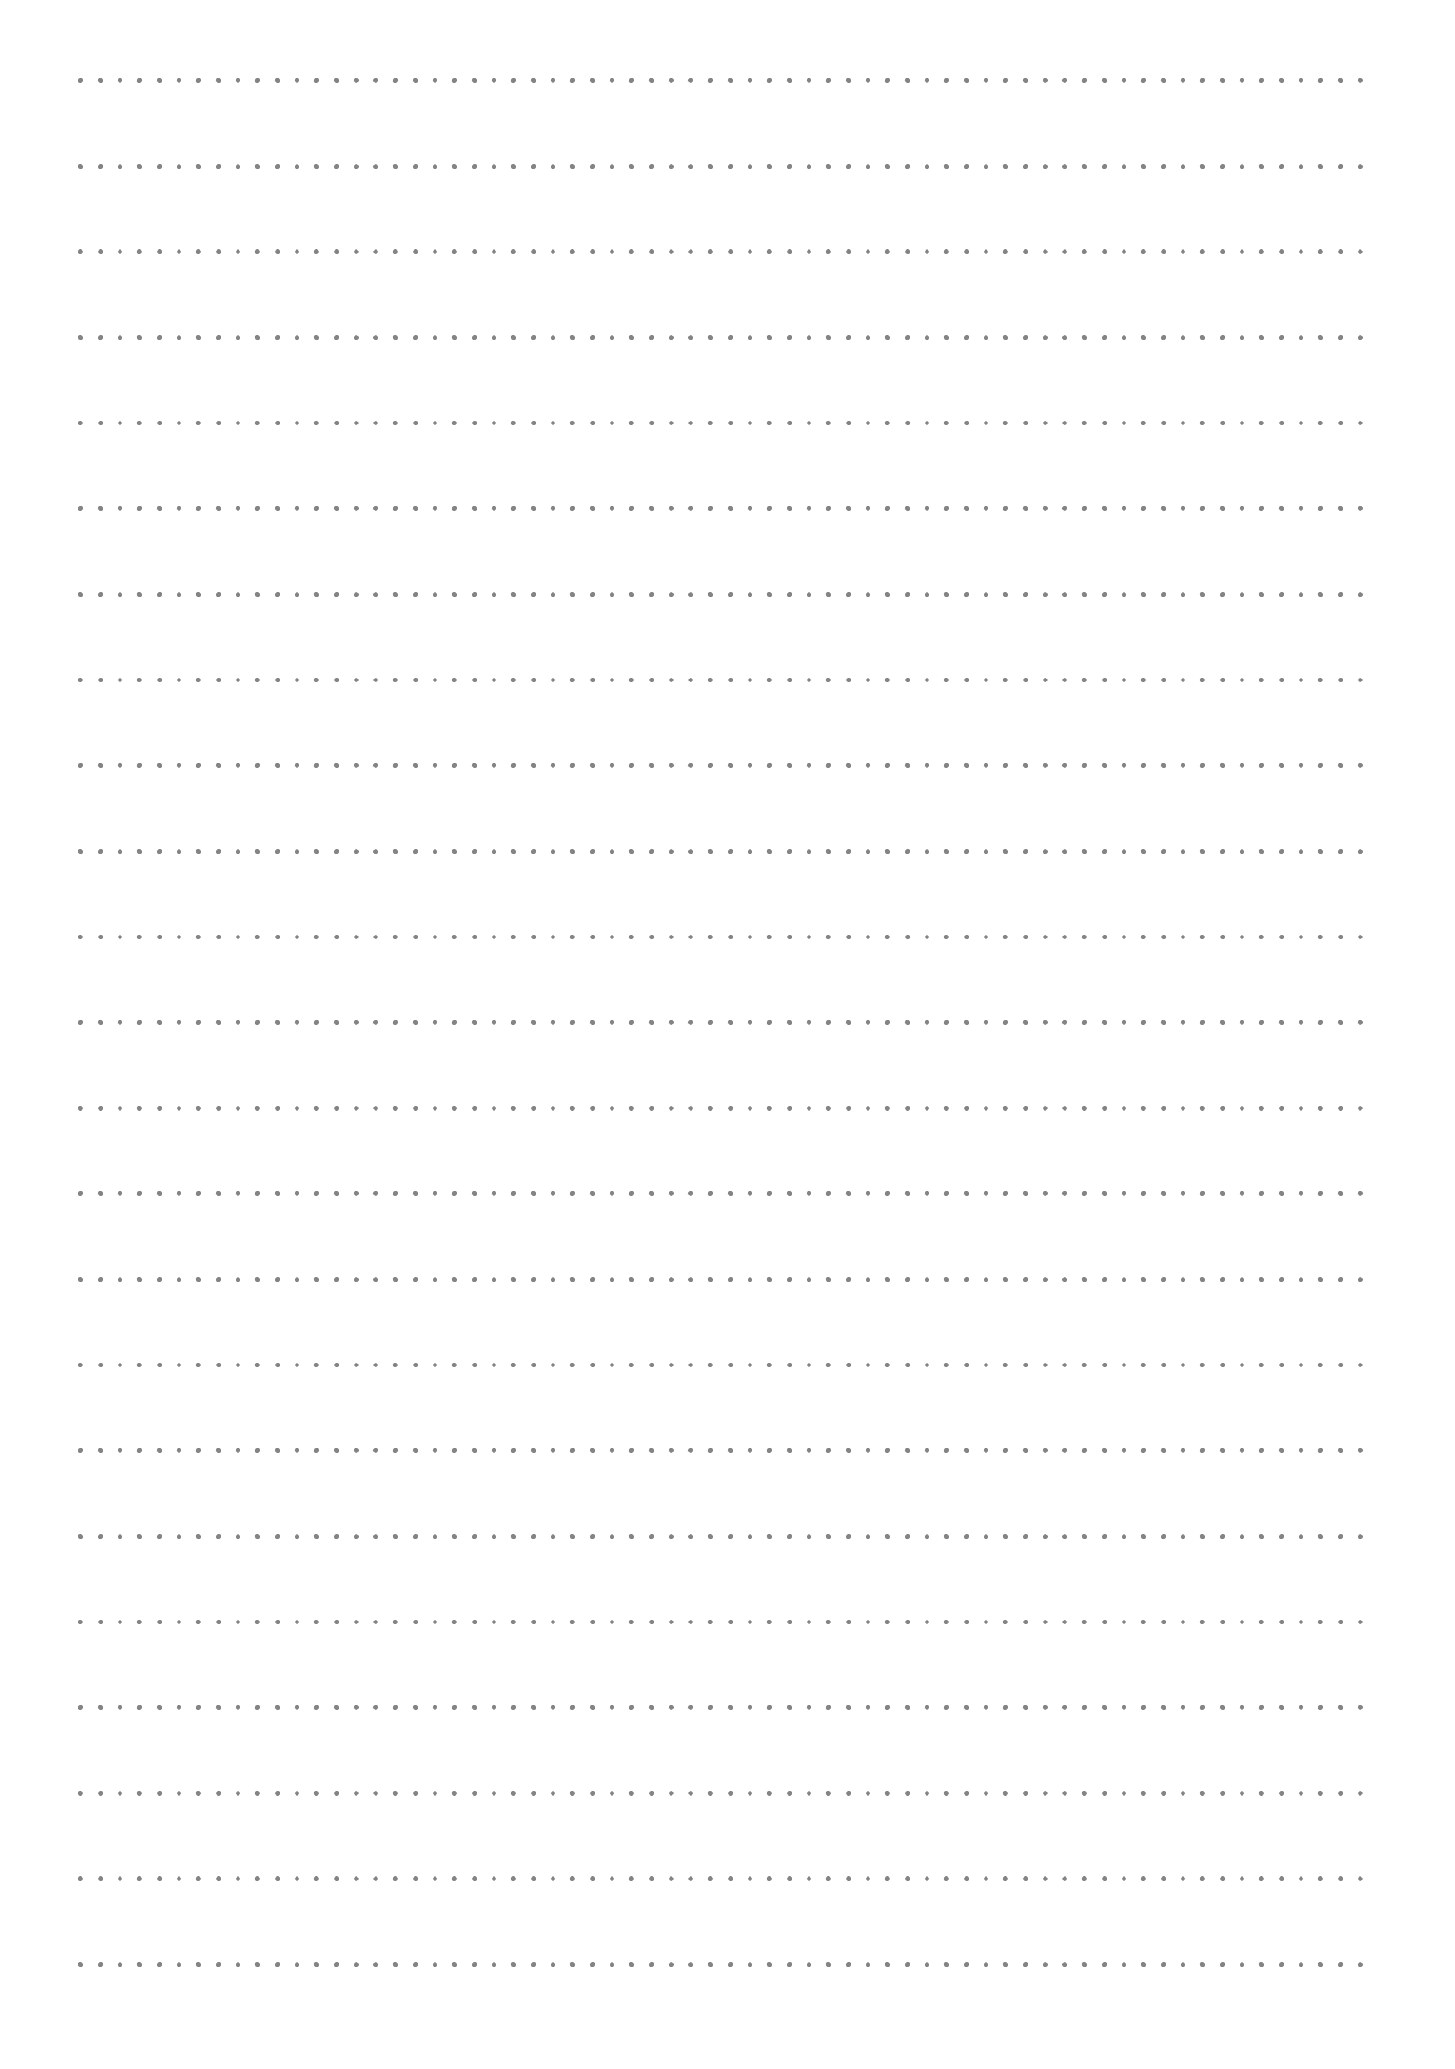 Printable Dotted Lined Paper Printables 8 7 Mm Line Height Pdf Download Lined Paper Free Paper Printables Writing Paper Template